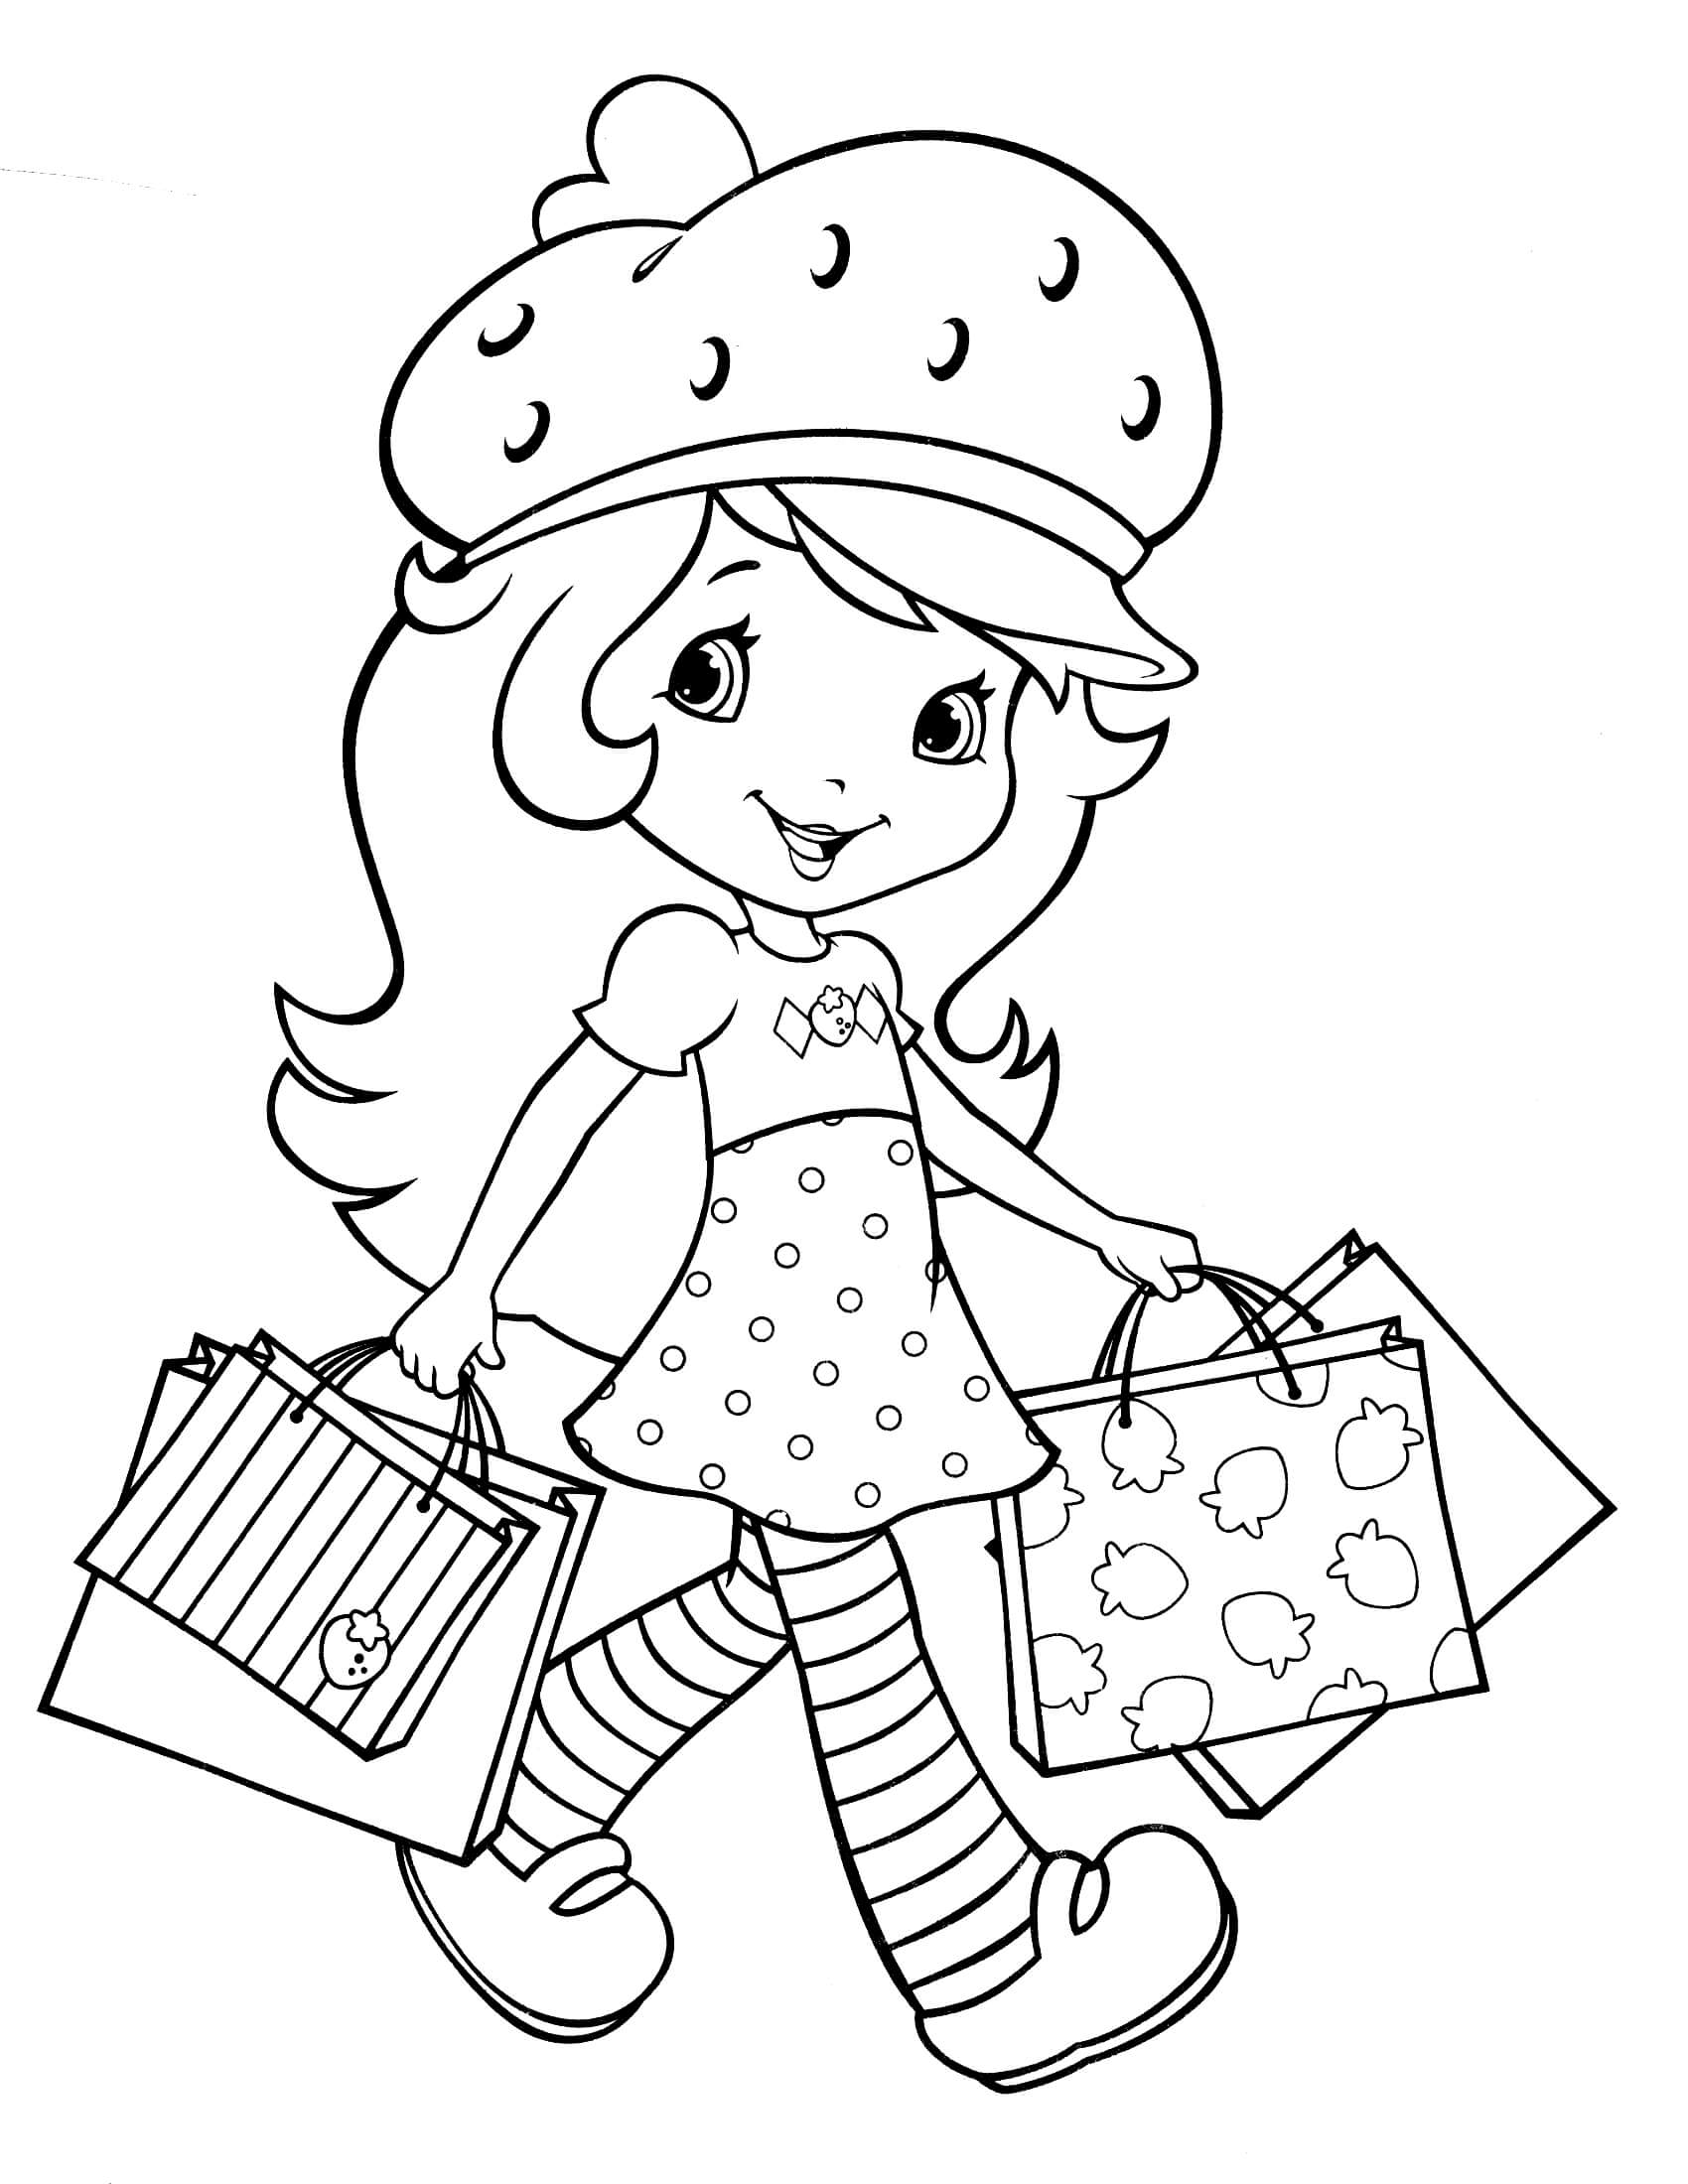 strawberry girl coloring pages strawberry shortcake coloring page with images mermaid pages girl coloring strawberry